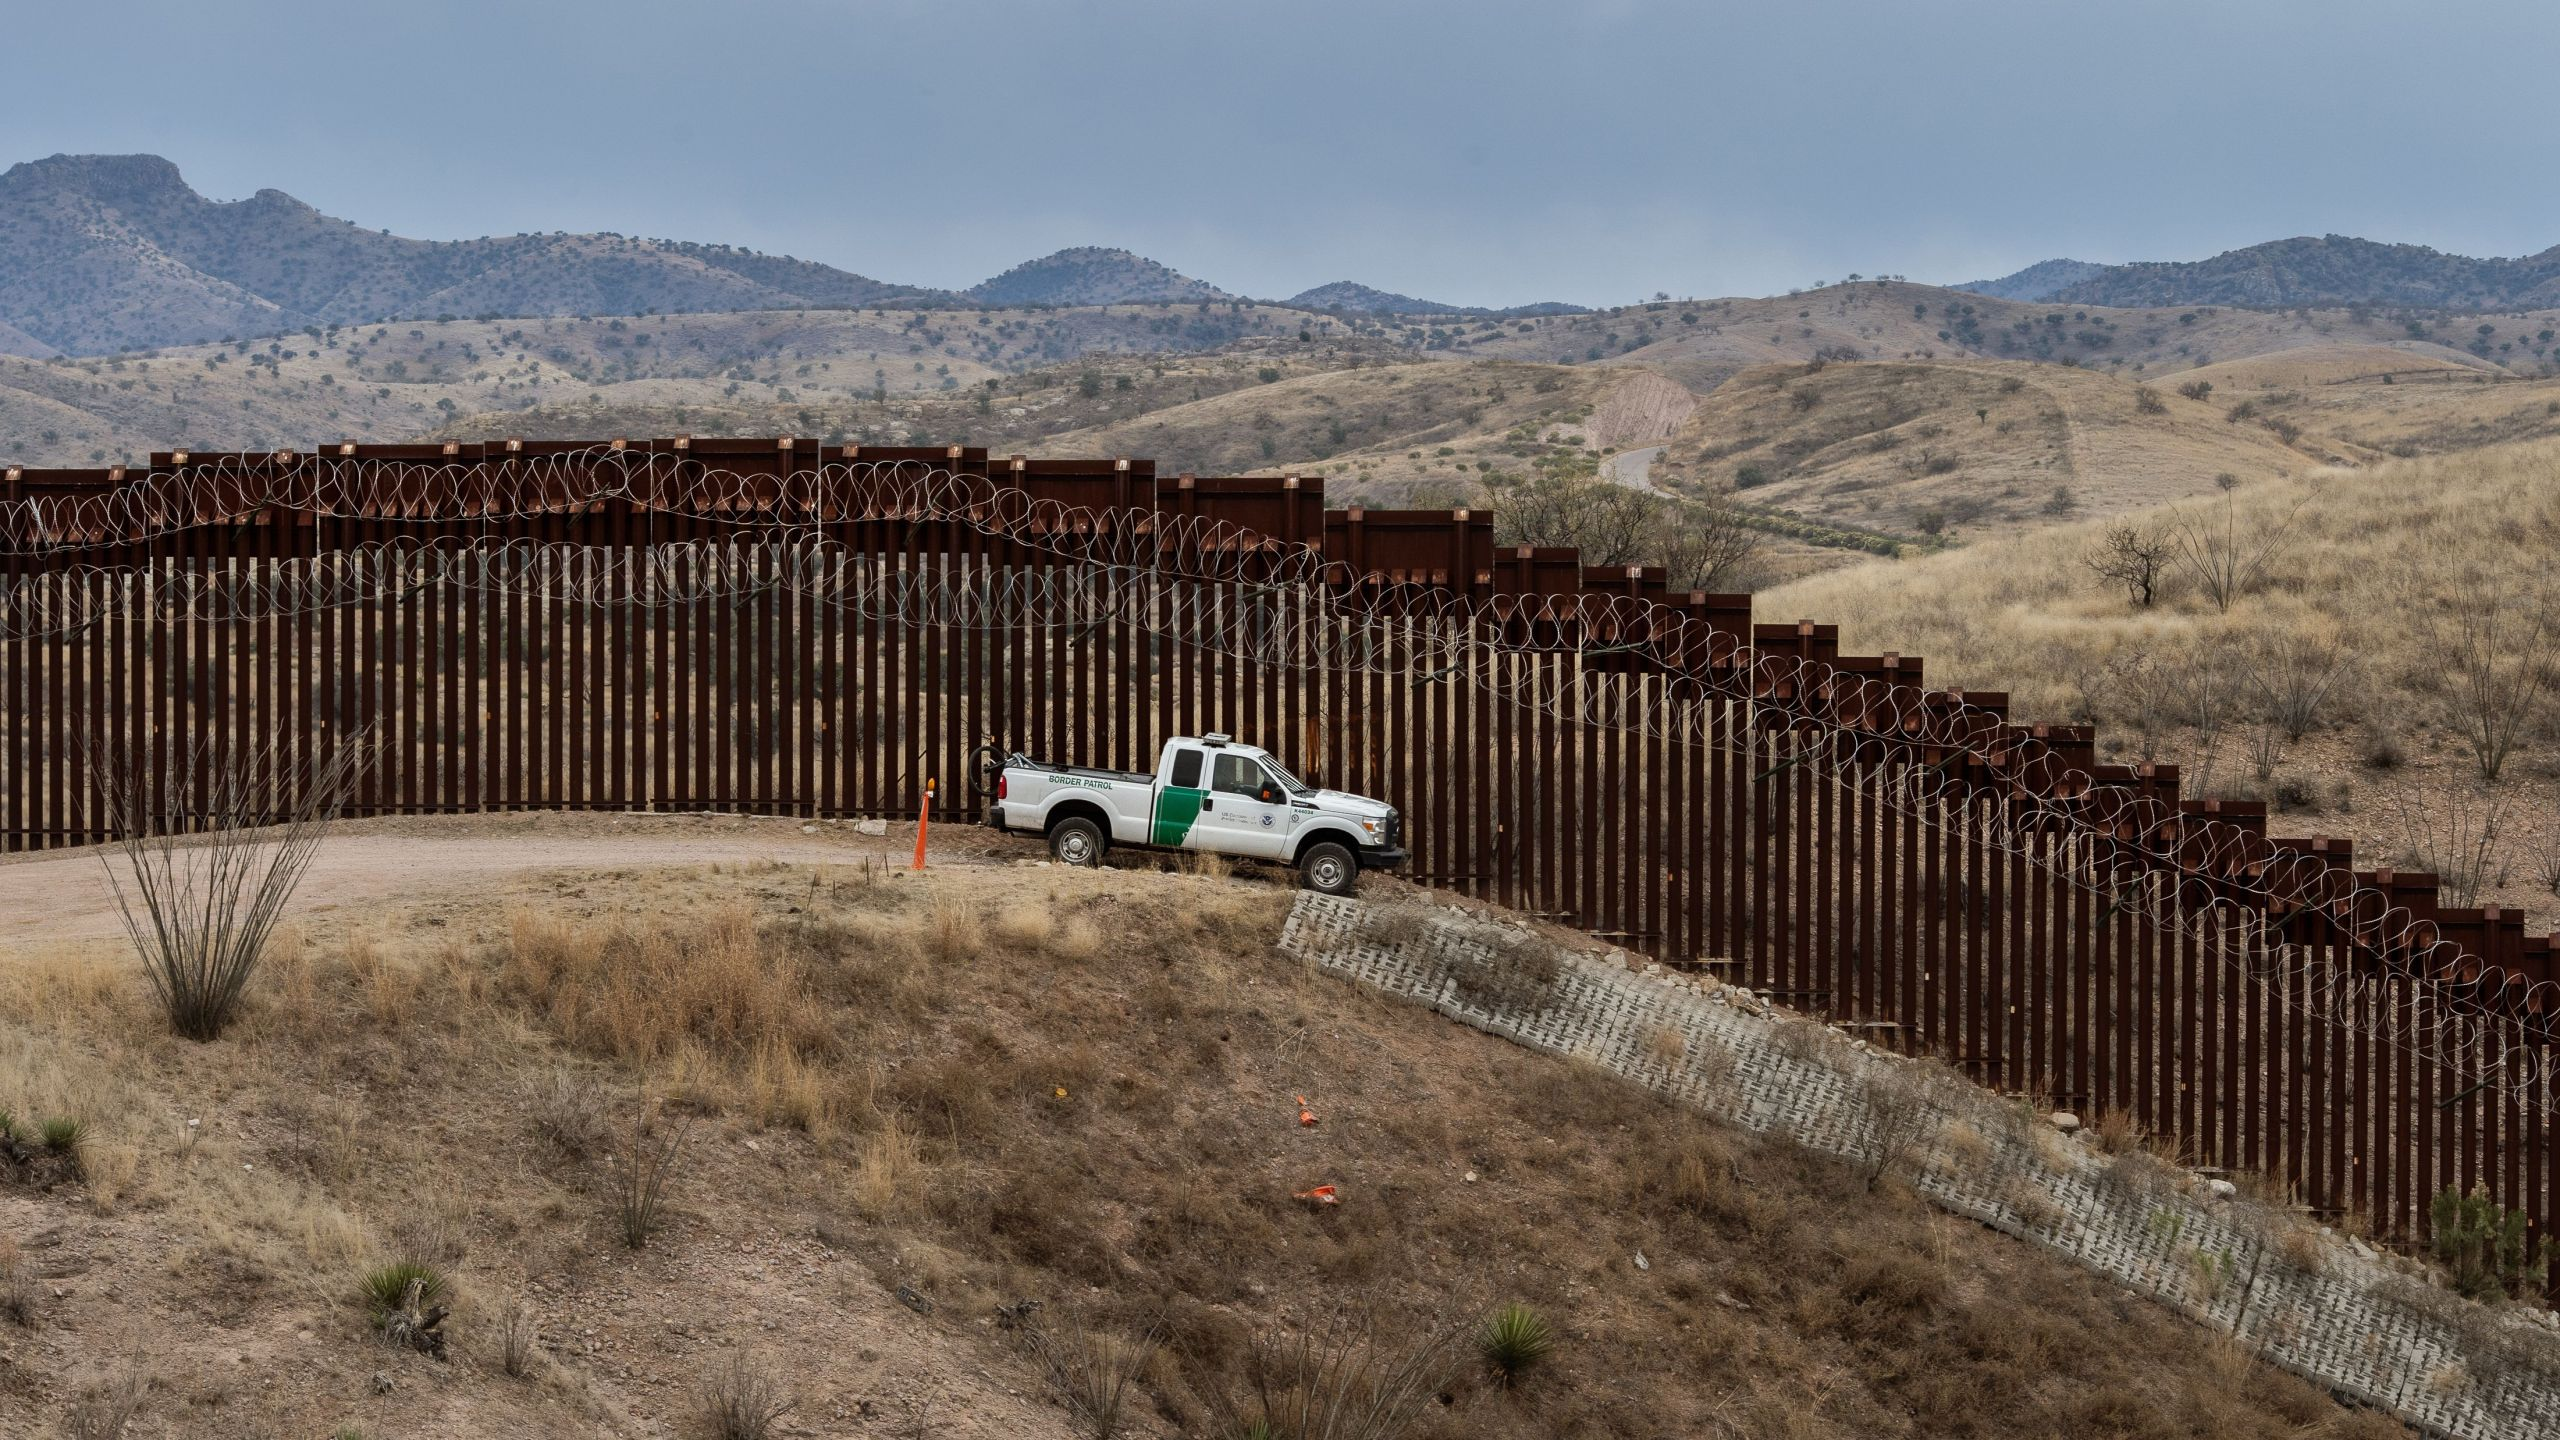 A Border Patrol officer sits inside his vehicle at the US/Mexico border fence, in Nogales, Arizona, on February 9, 2019. (Credit: ARIANA DREHSLER/AFP/Getty Images)